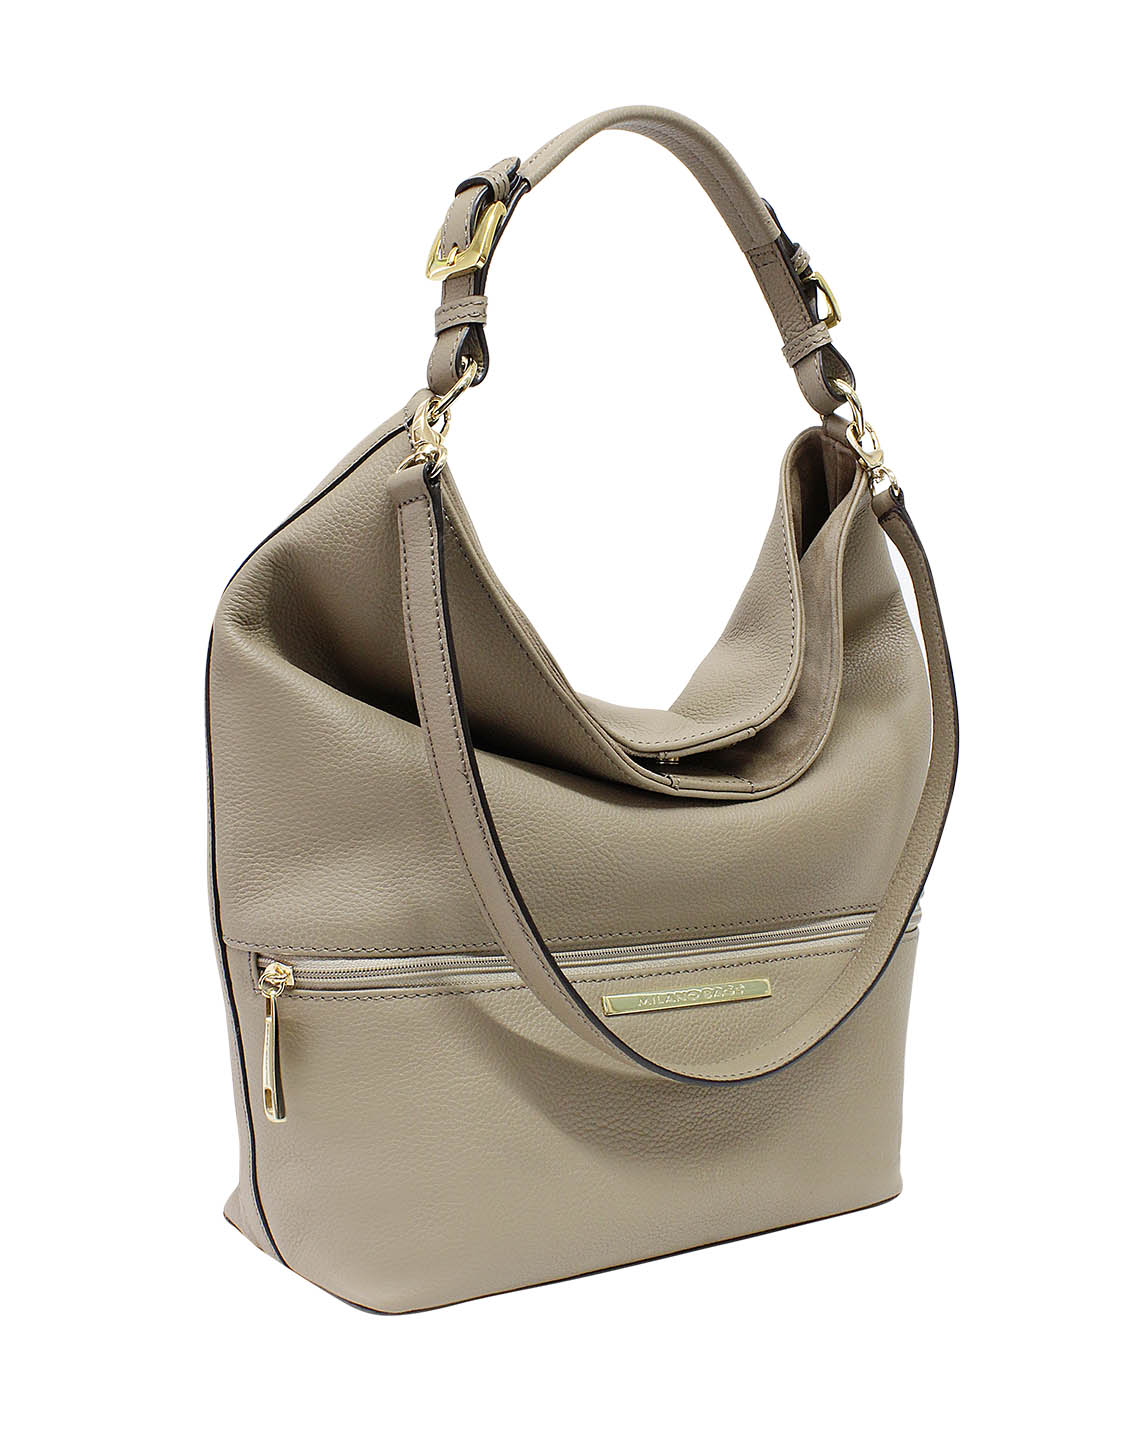 Cartera Tote Bag DS-2627 Color Visón